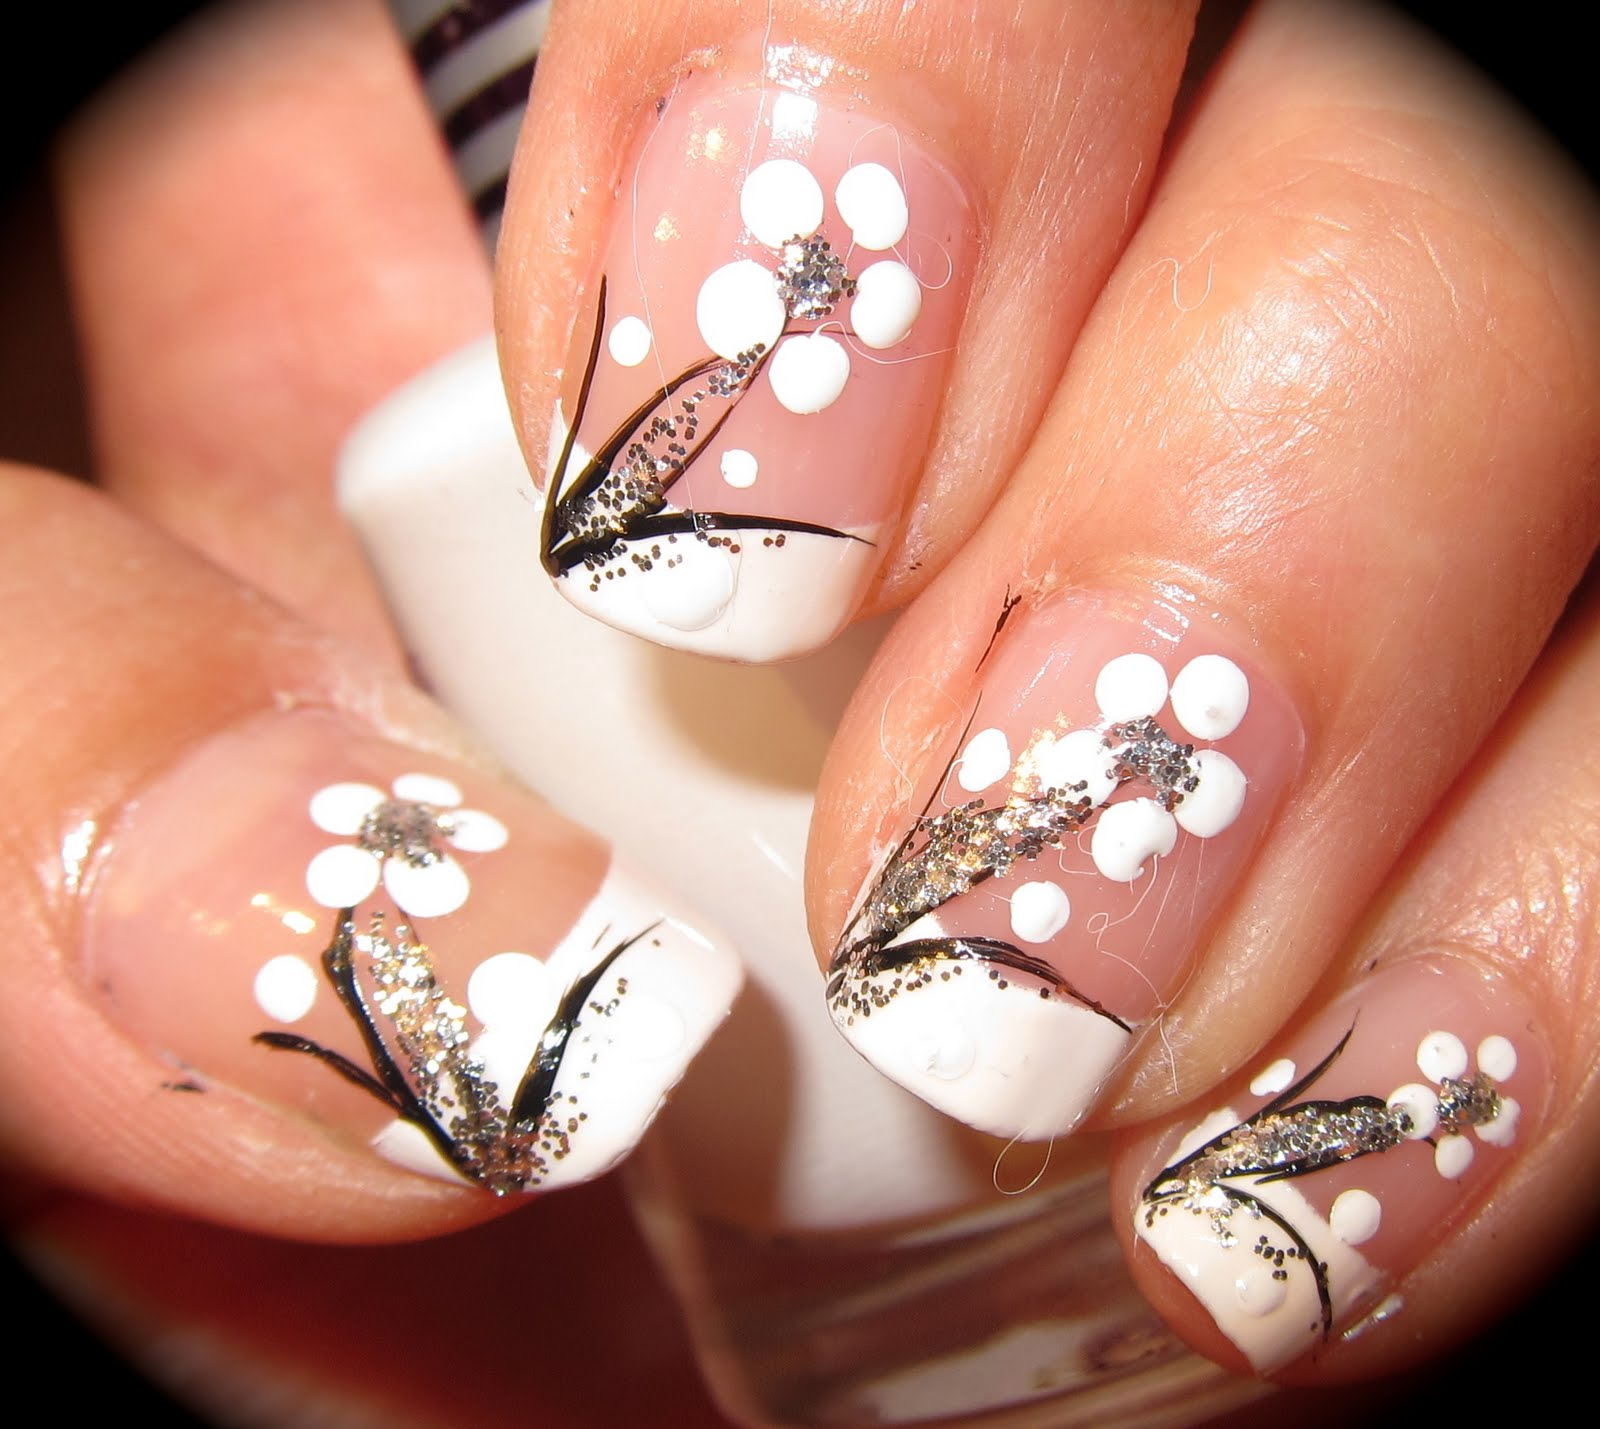 11 Black And White Simple Nail Designs Images